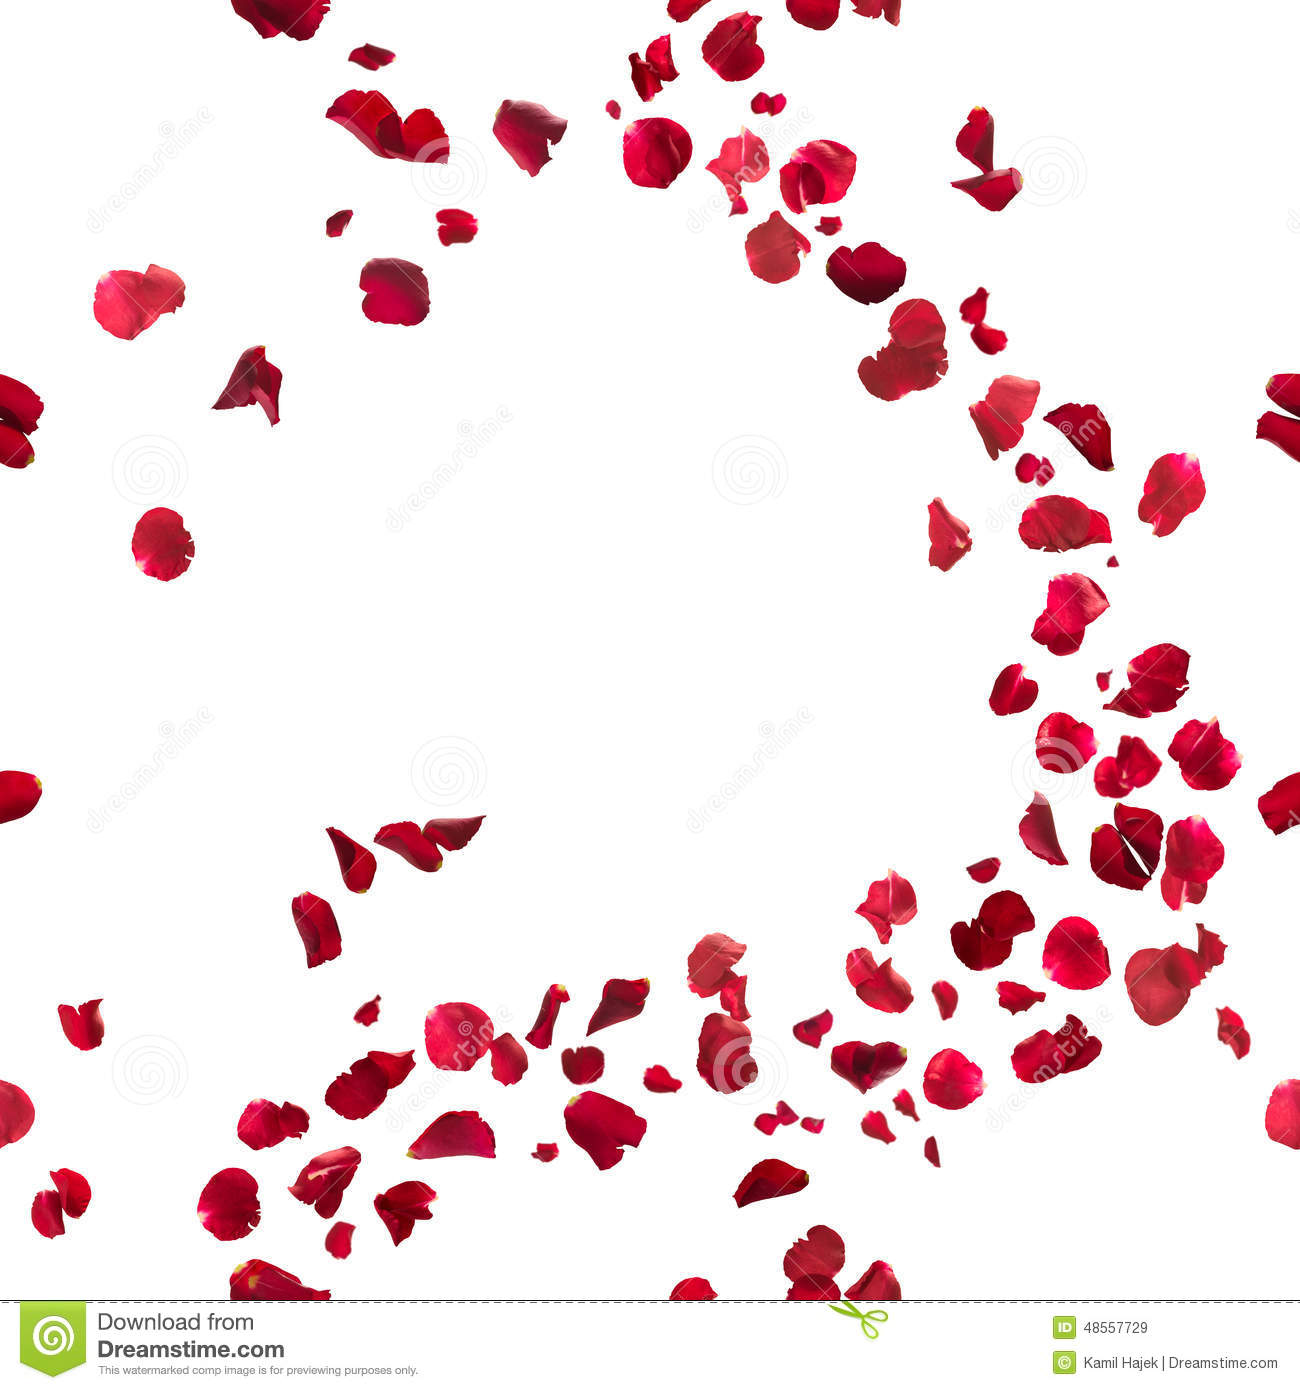 Rose Petals Falling Wallpaper Transparent Gif Seamless Red Rose Petals Breeze Stock Image Image Of